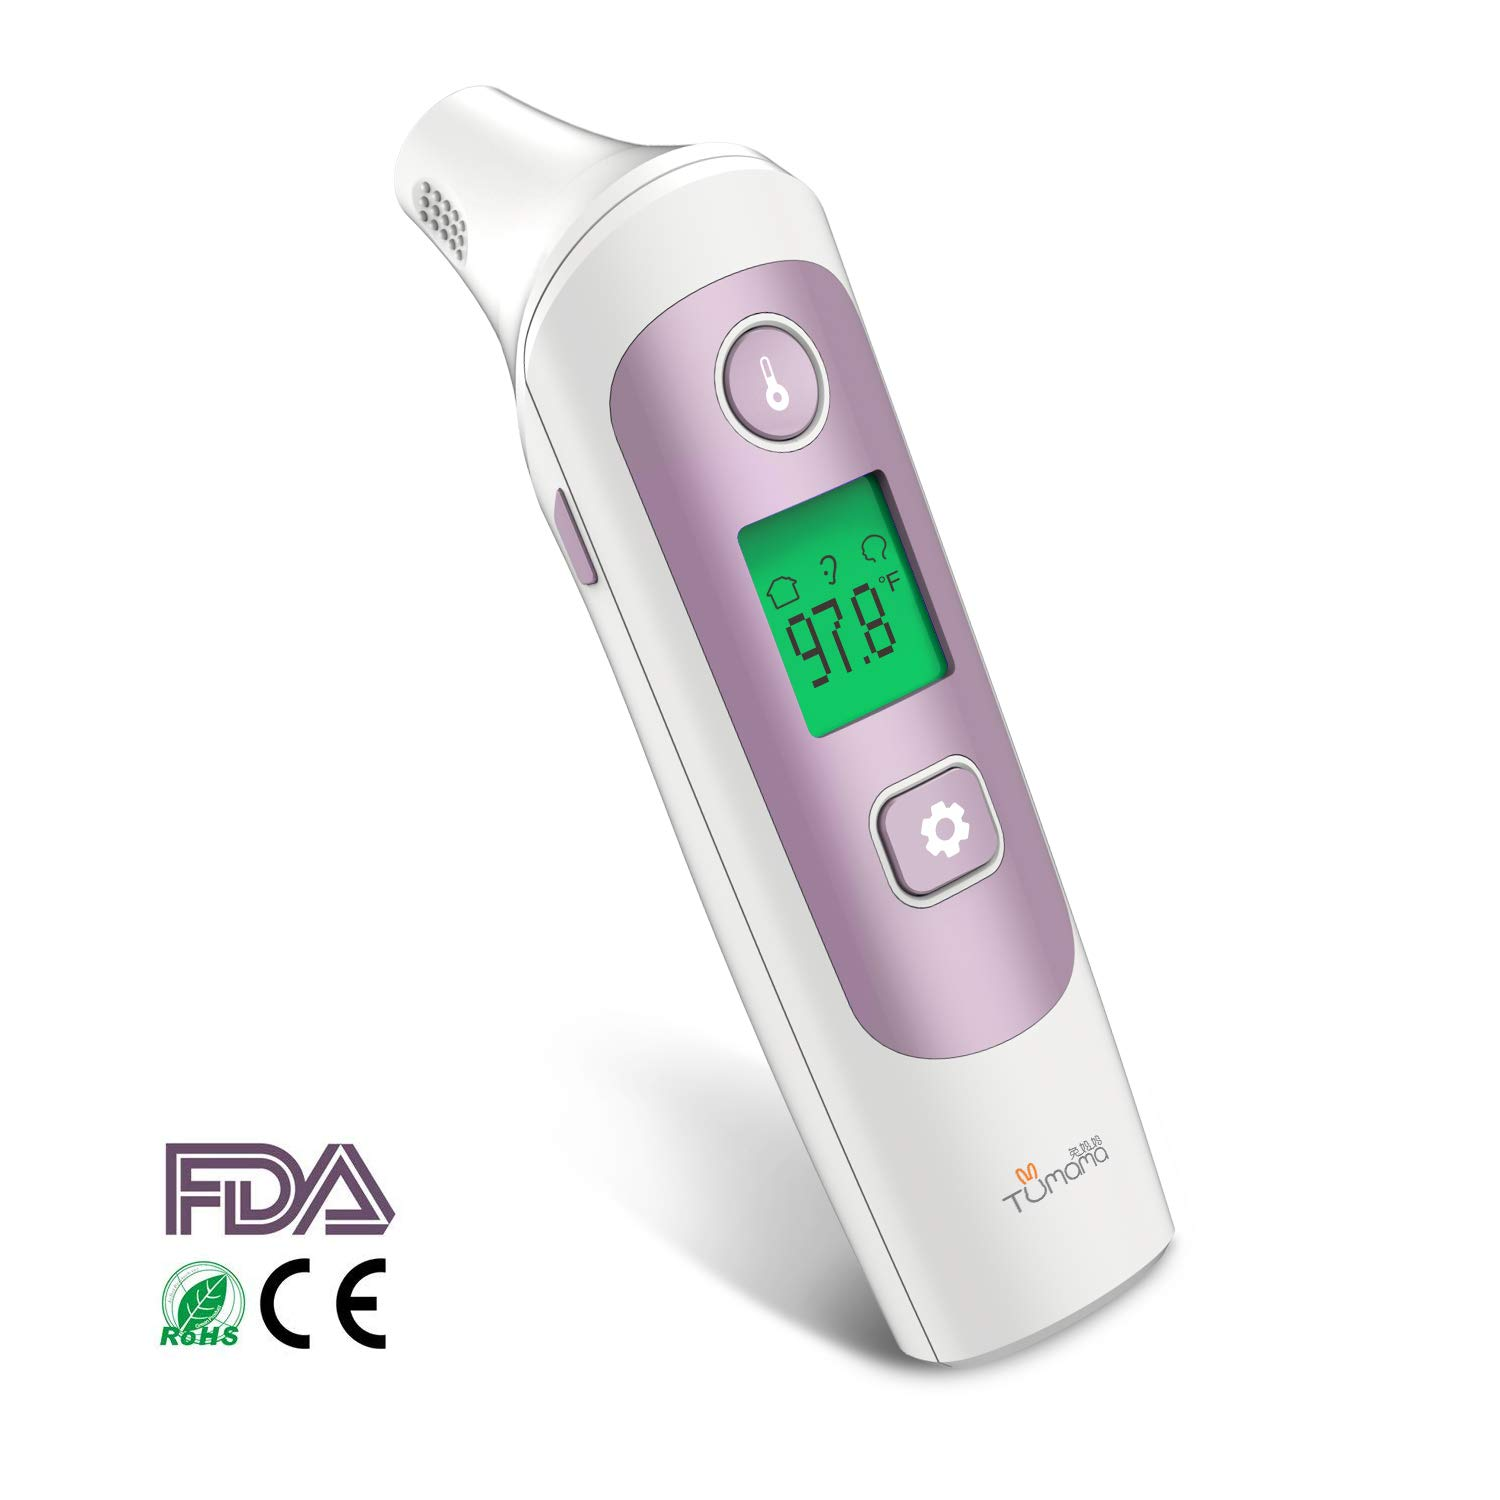 TUMAMA Baby Ear and Forehead Infrared Thermometer, Digital Medical Infrared Thermometer with 32 Memories Suitable for Baby, Infants, Toddlers, Adults, Objects with FDA and CE Approved